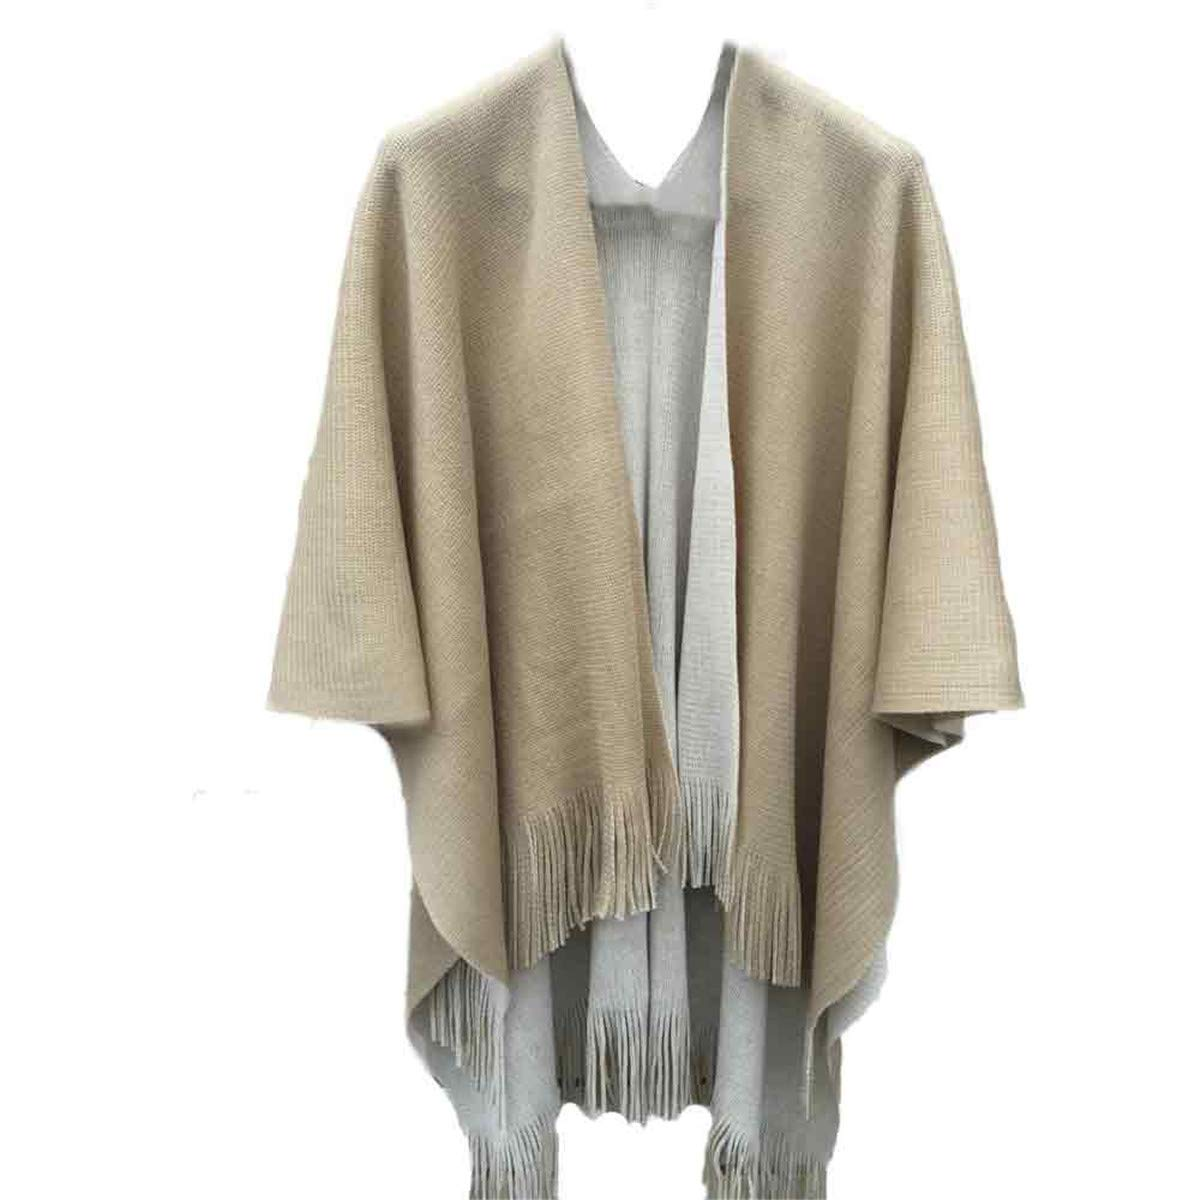 KESEE Clearance Coat ☀ Women Cashmere Knitted Cardigan Sweater Poncho Capes Shawl Vintage Cape Solid Sweater (One Size, Beige)